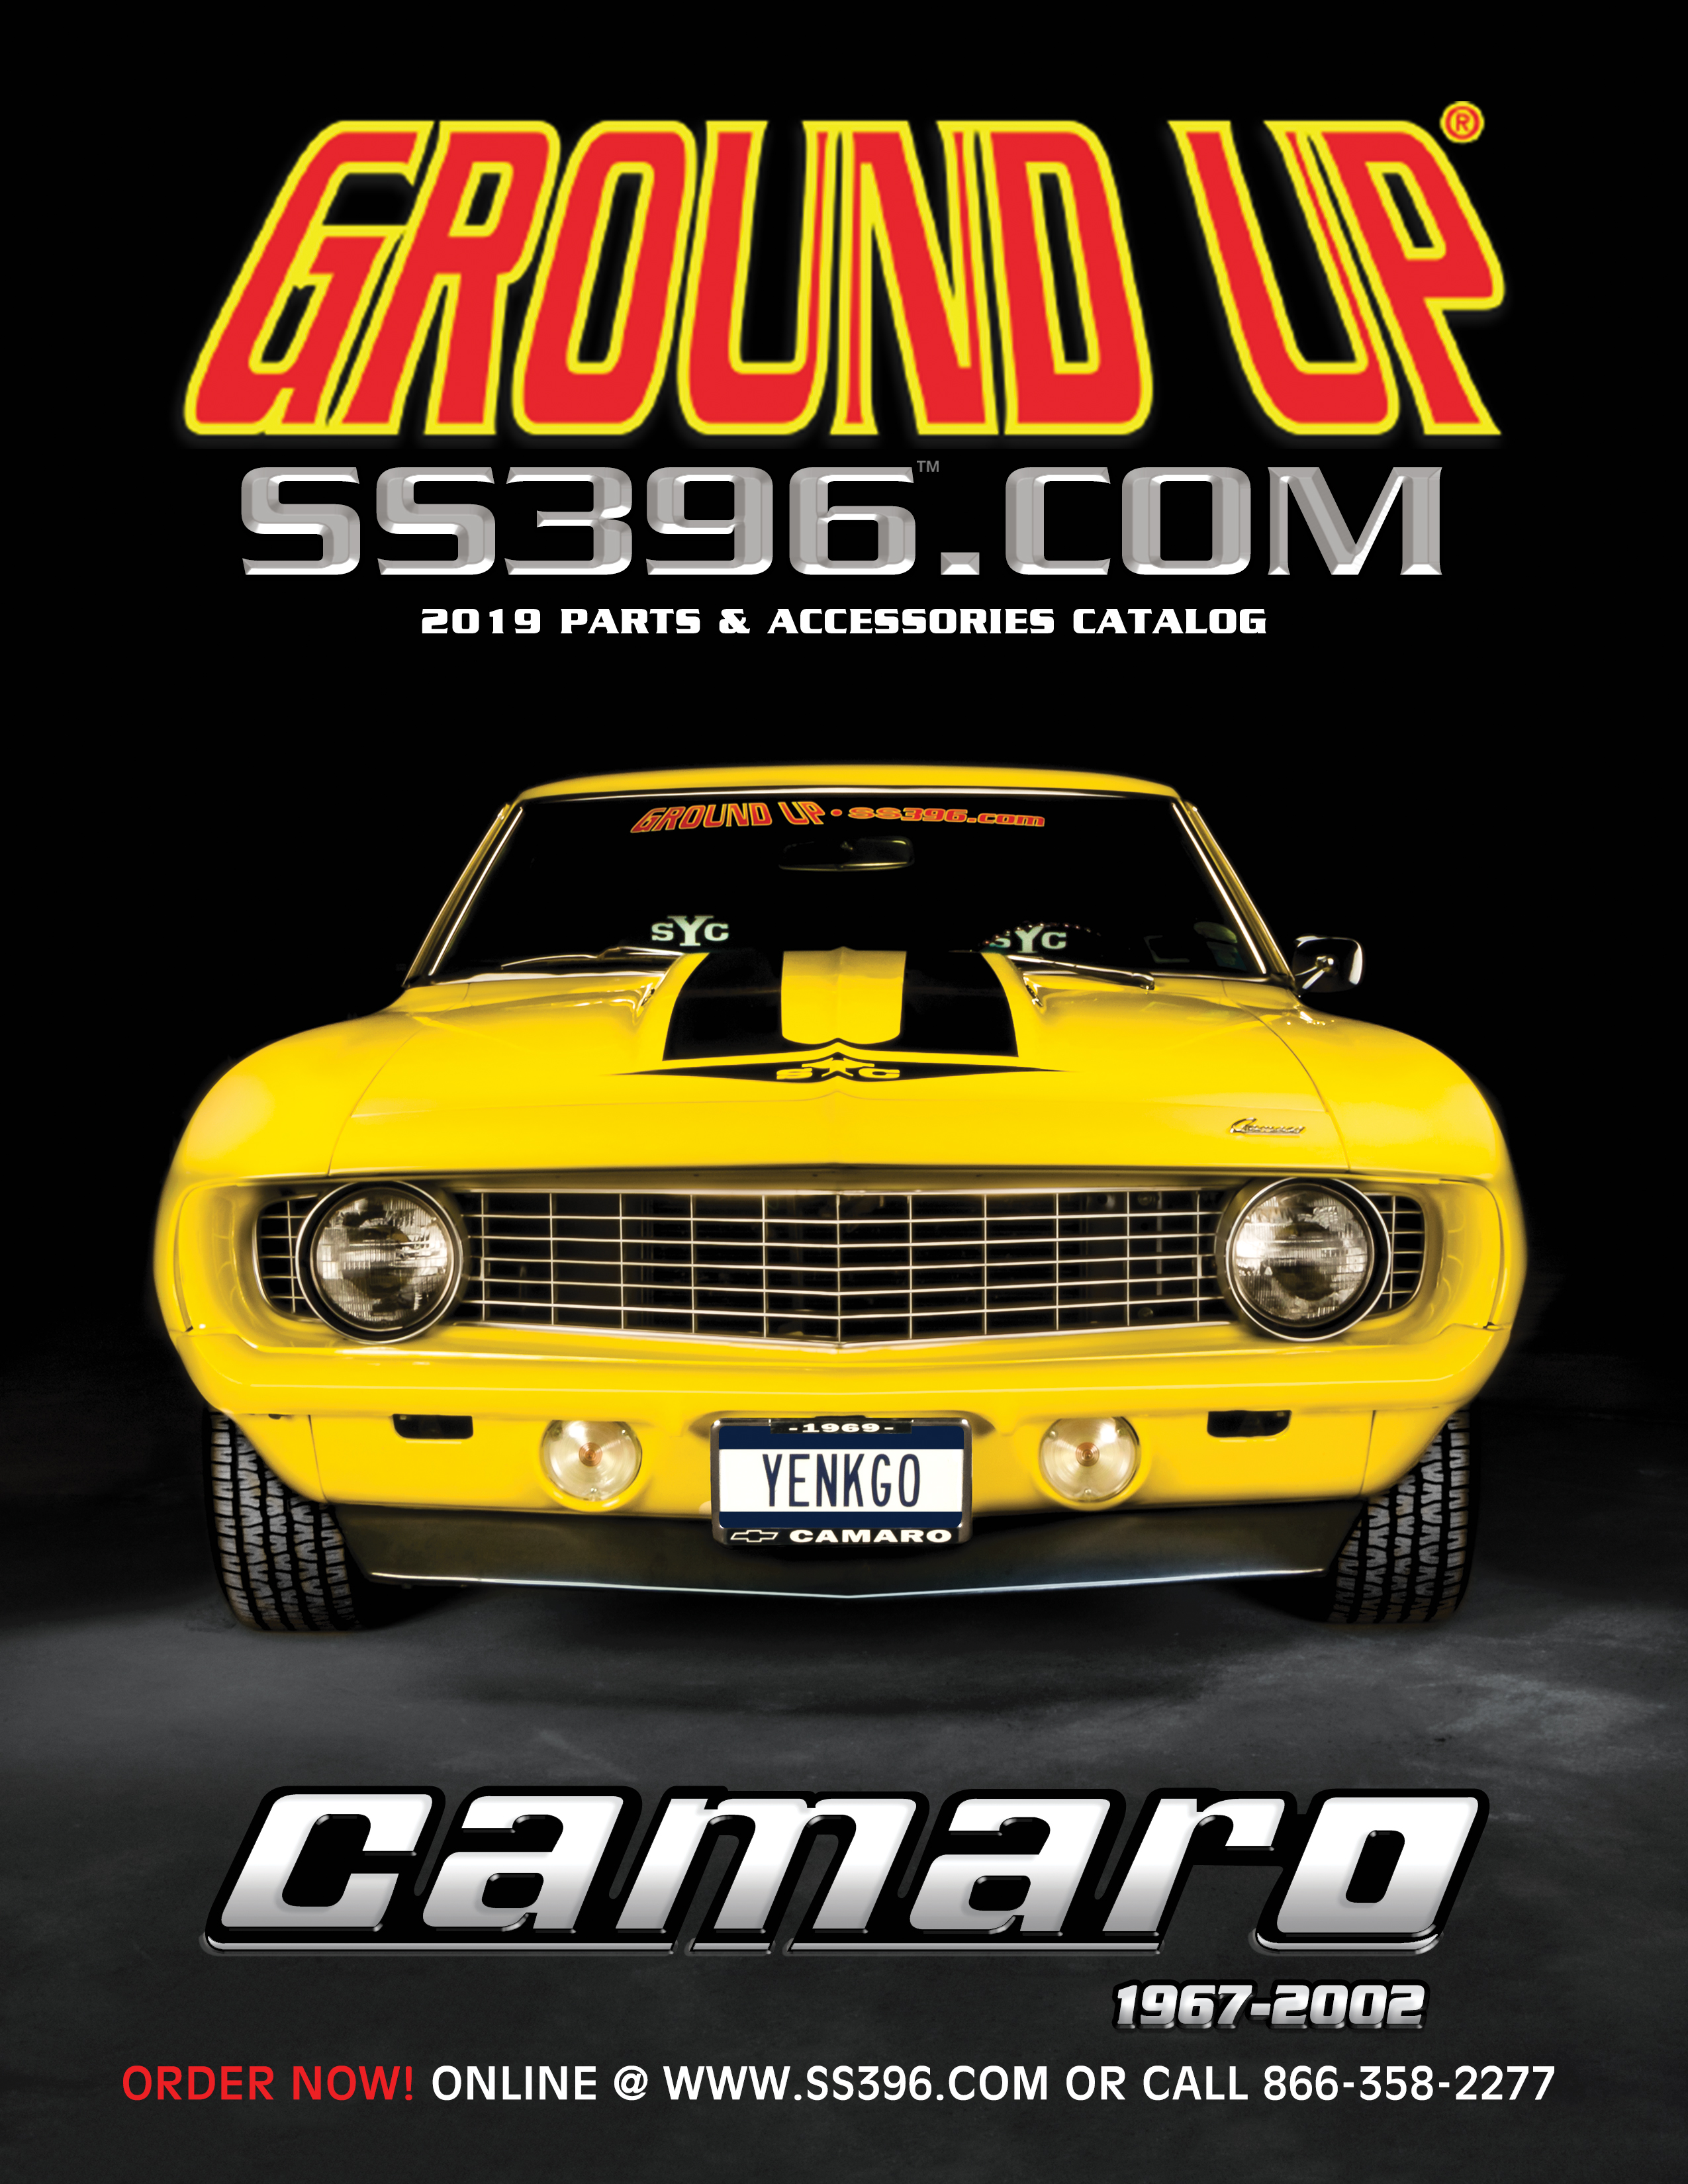 Our Free Chevelle Parts Calatog, Camaro Parts Catalog, Nova Parts Catalog  and El Camino Parts Catalog are all new for 2017!